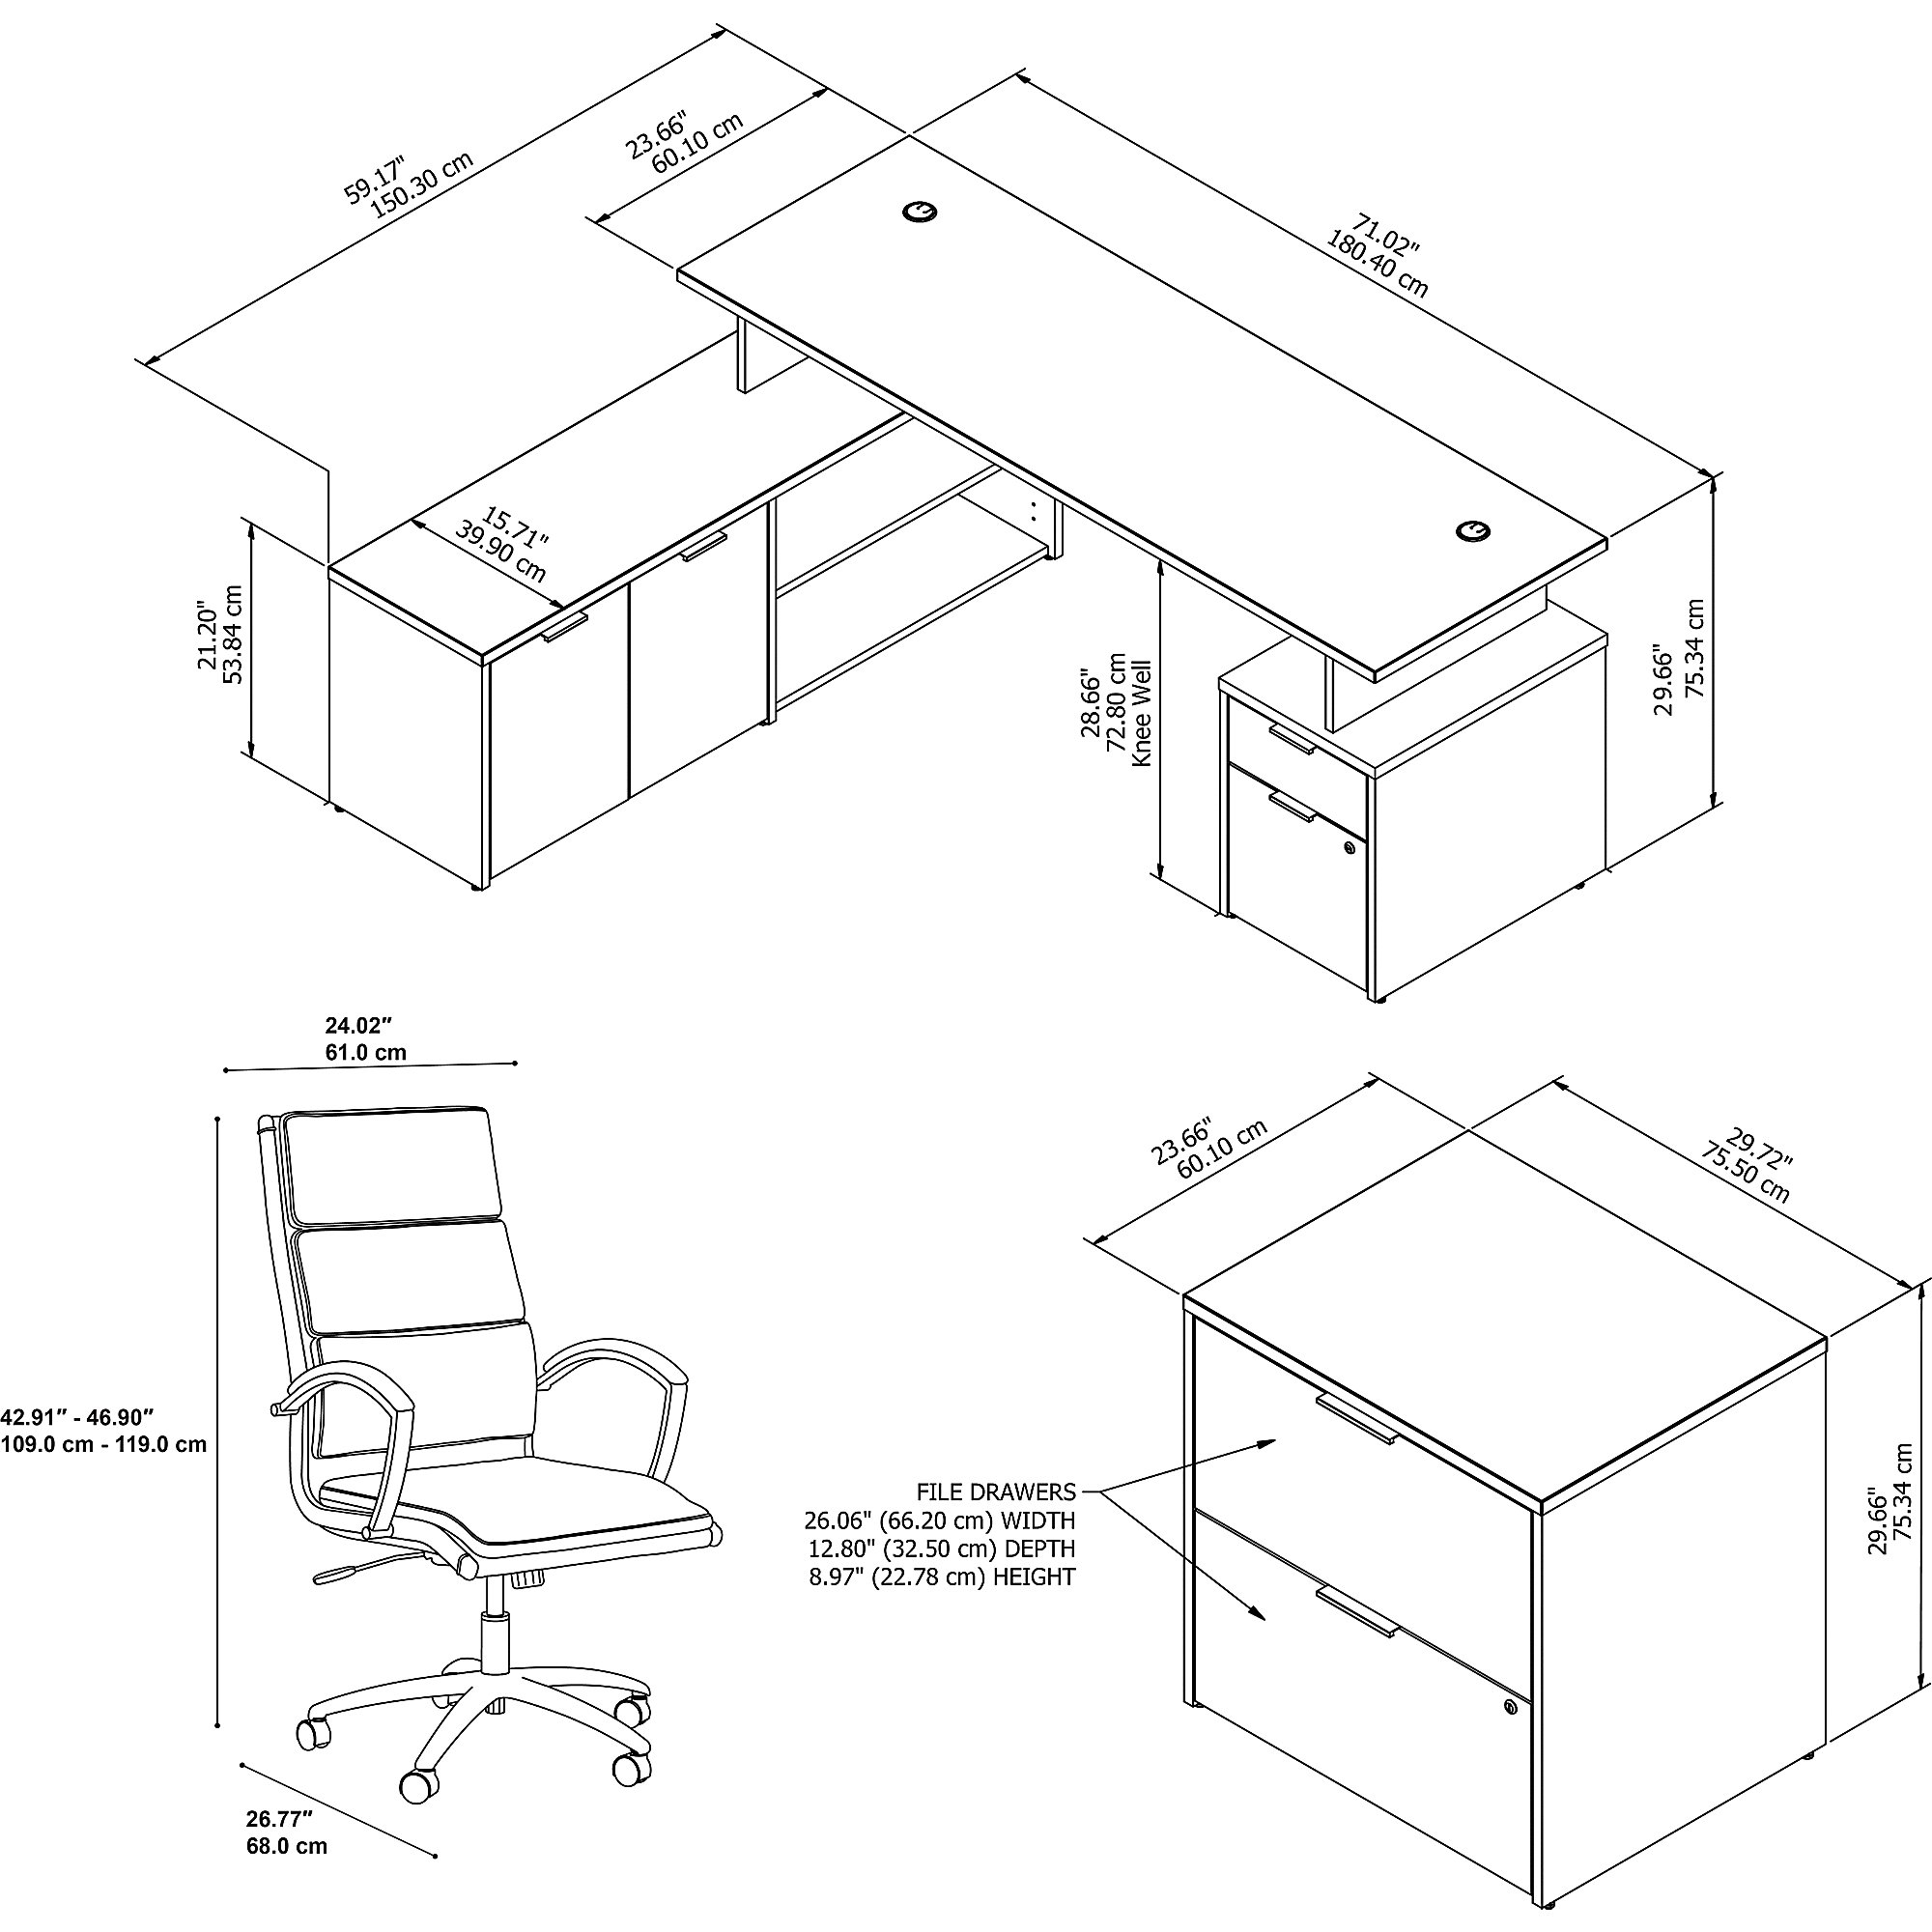 jamestown jtn025 desk and chair dimensions